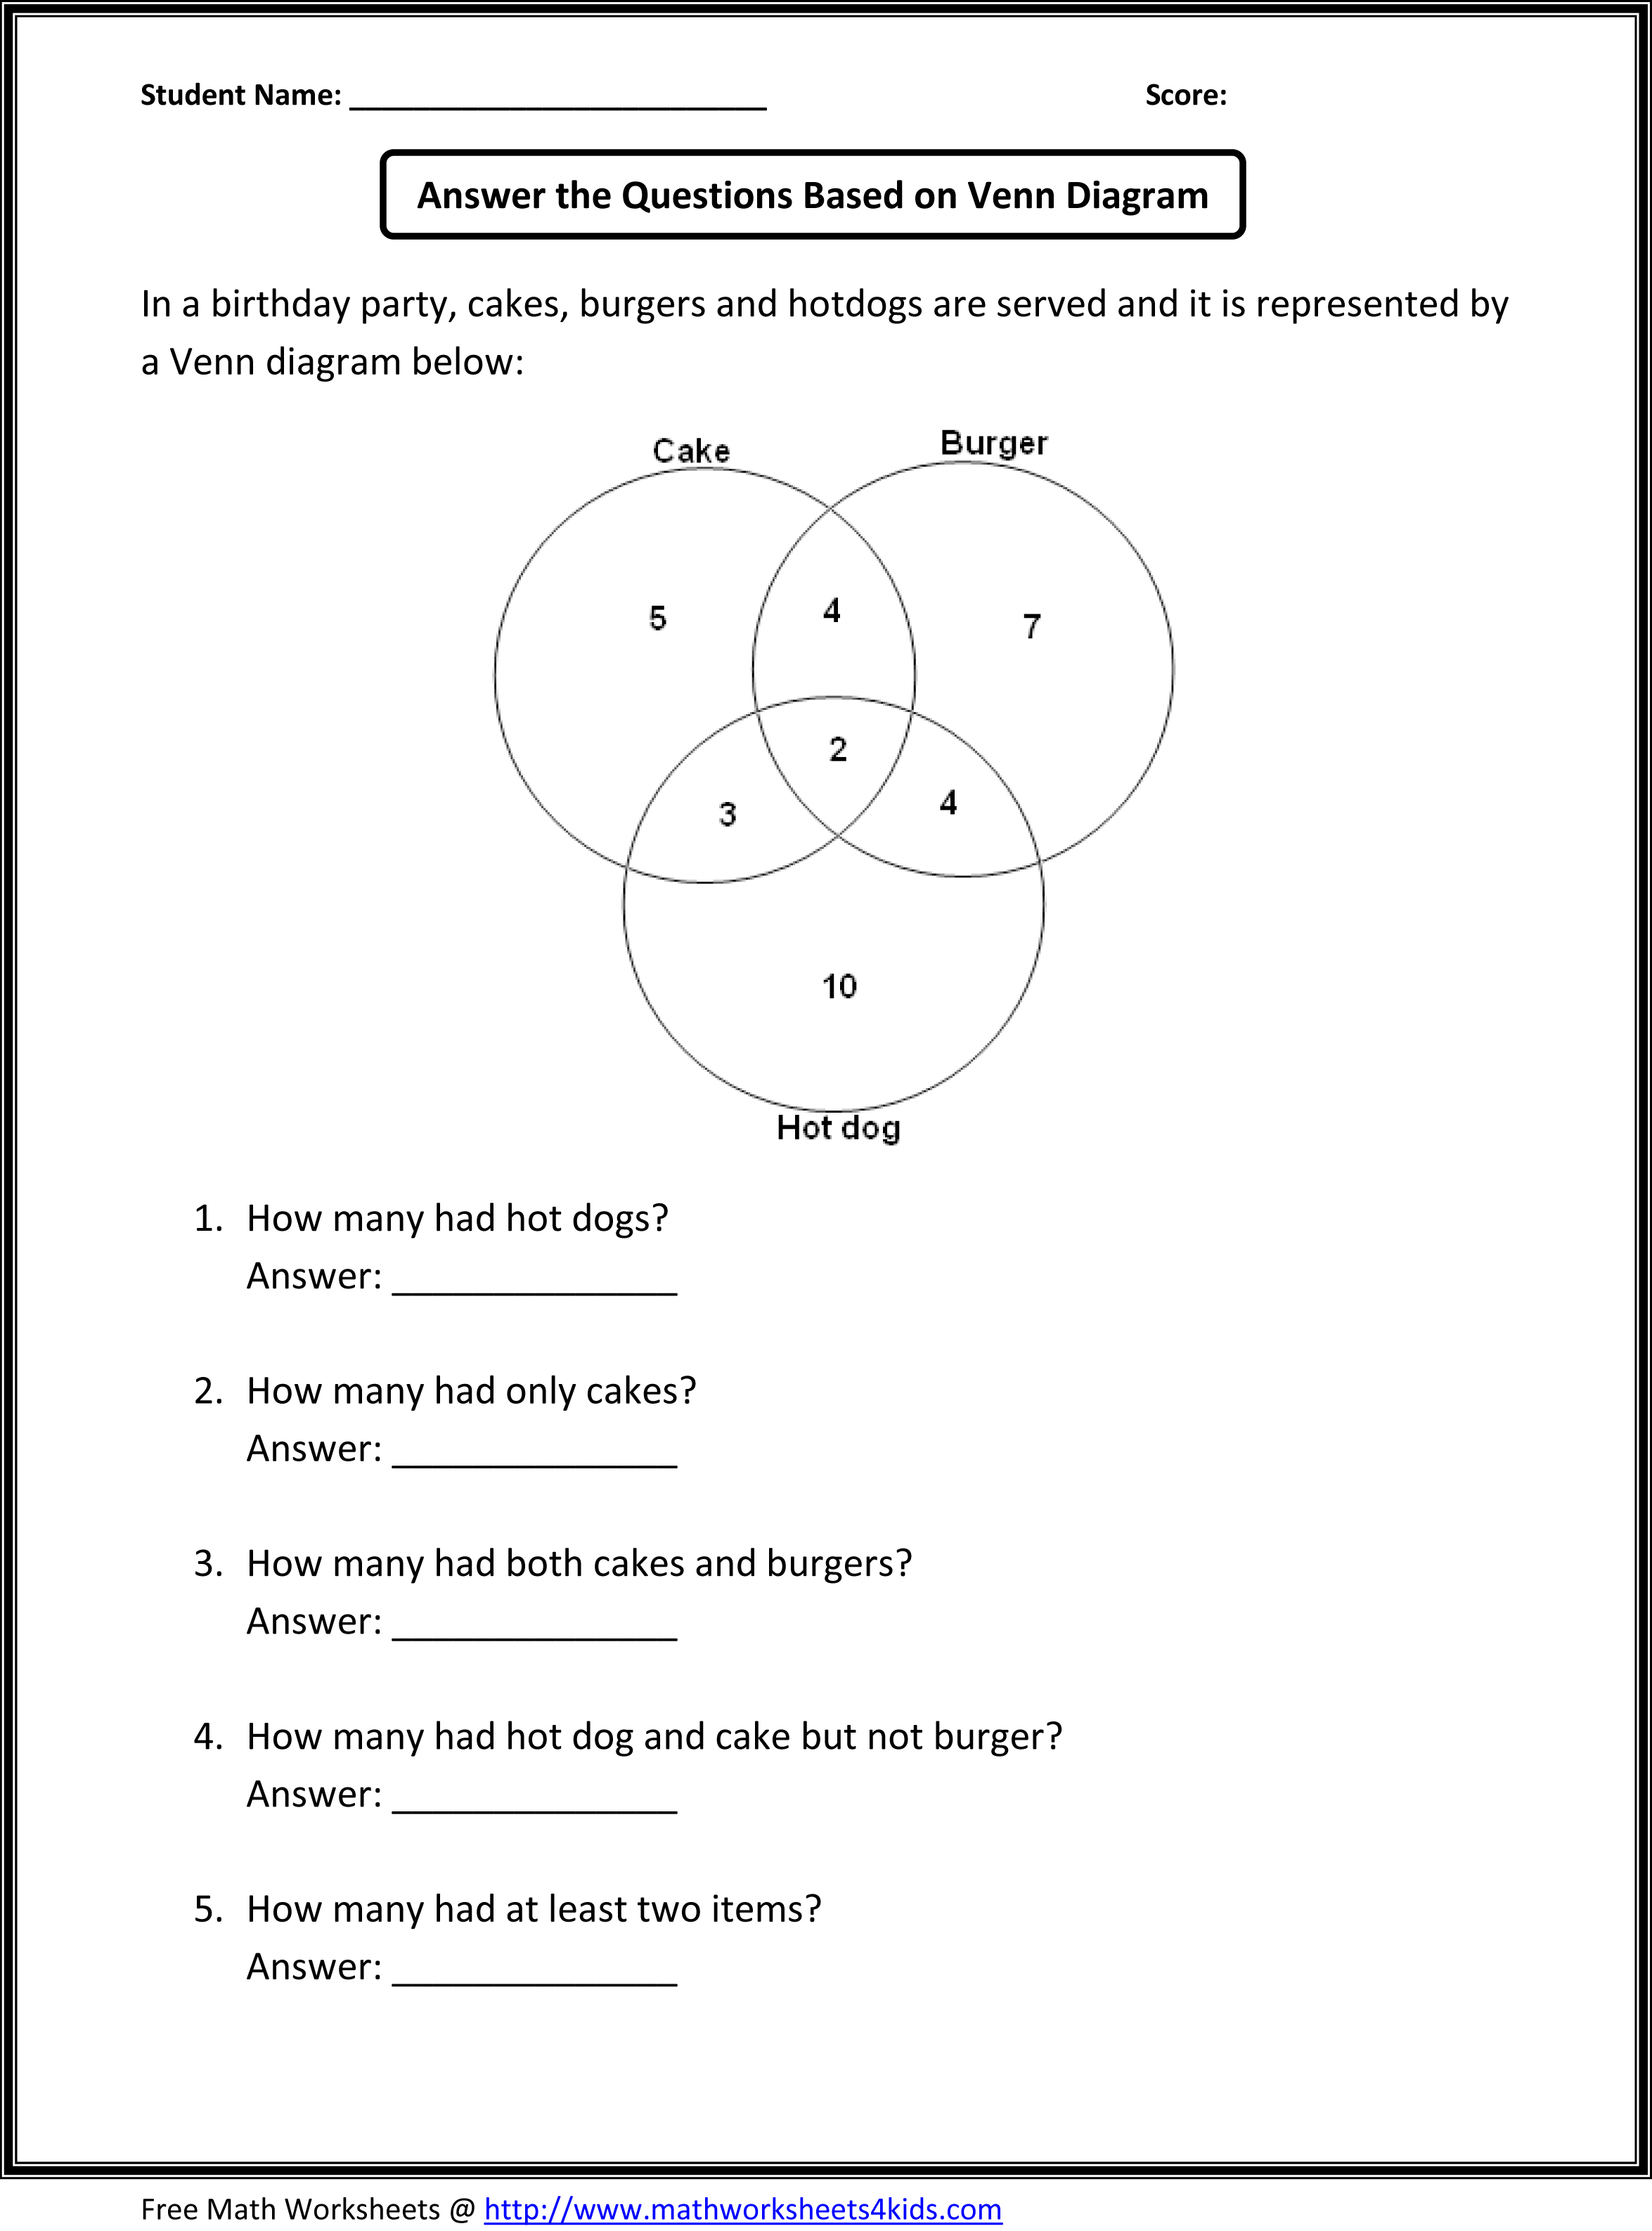 14 Best Images Of Short Storyysis Worksheet